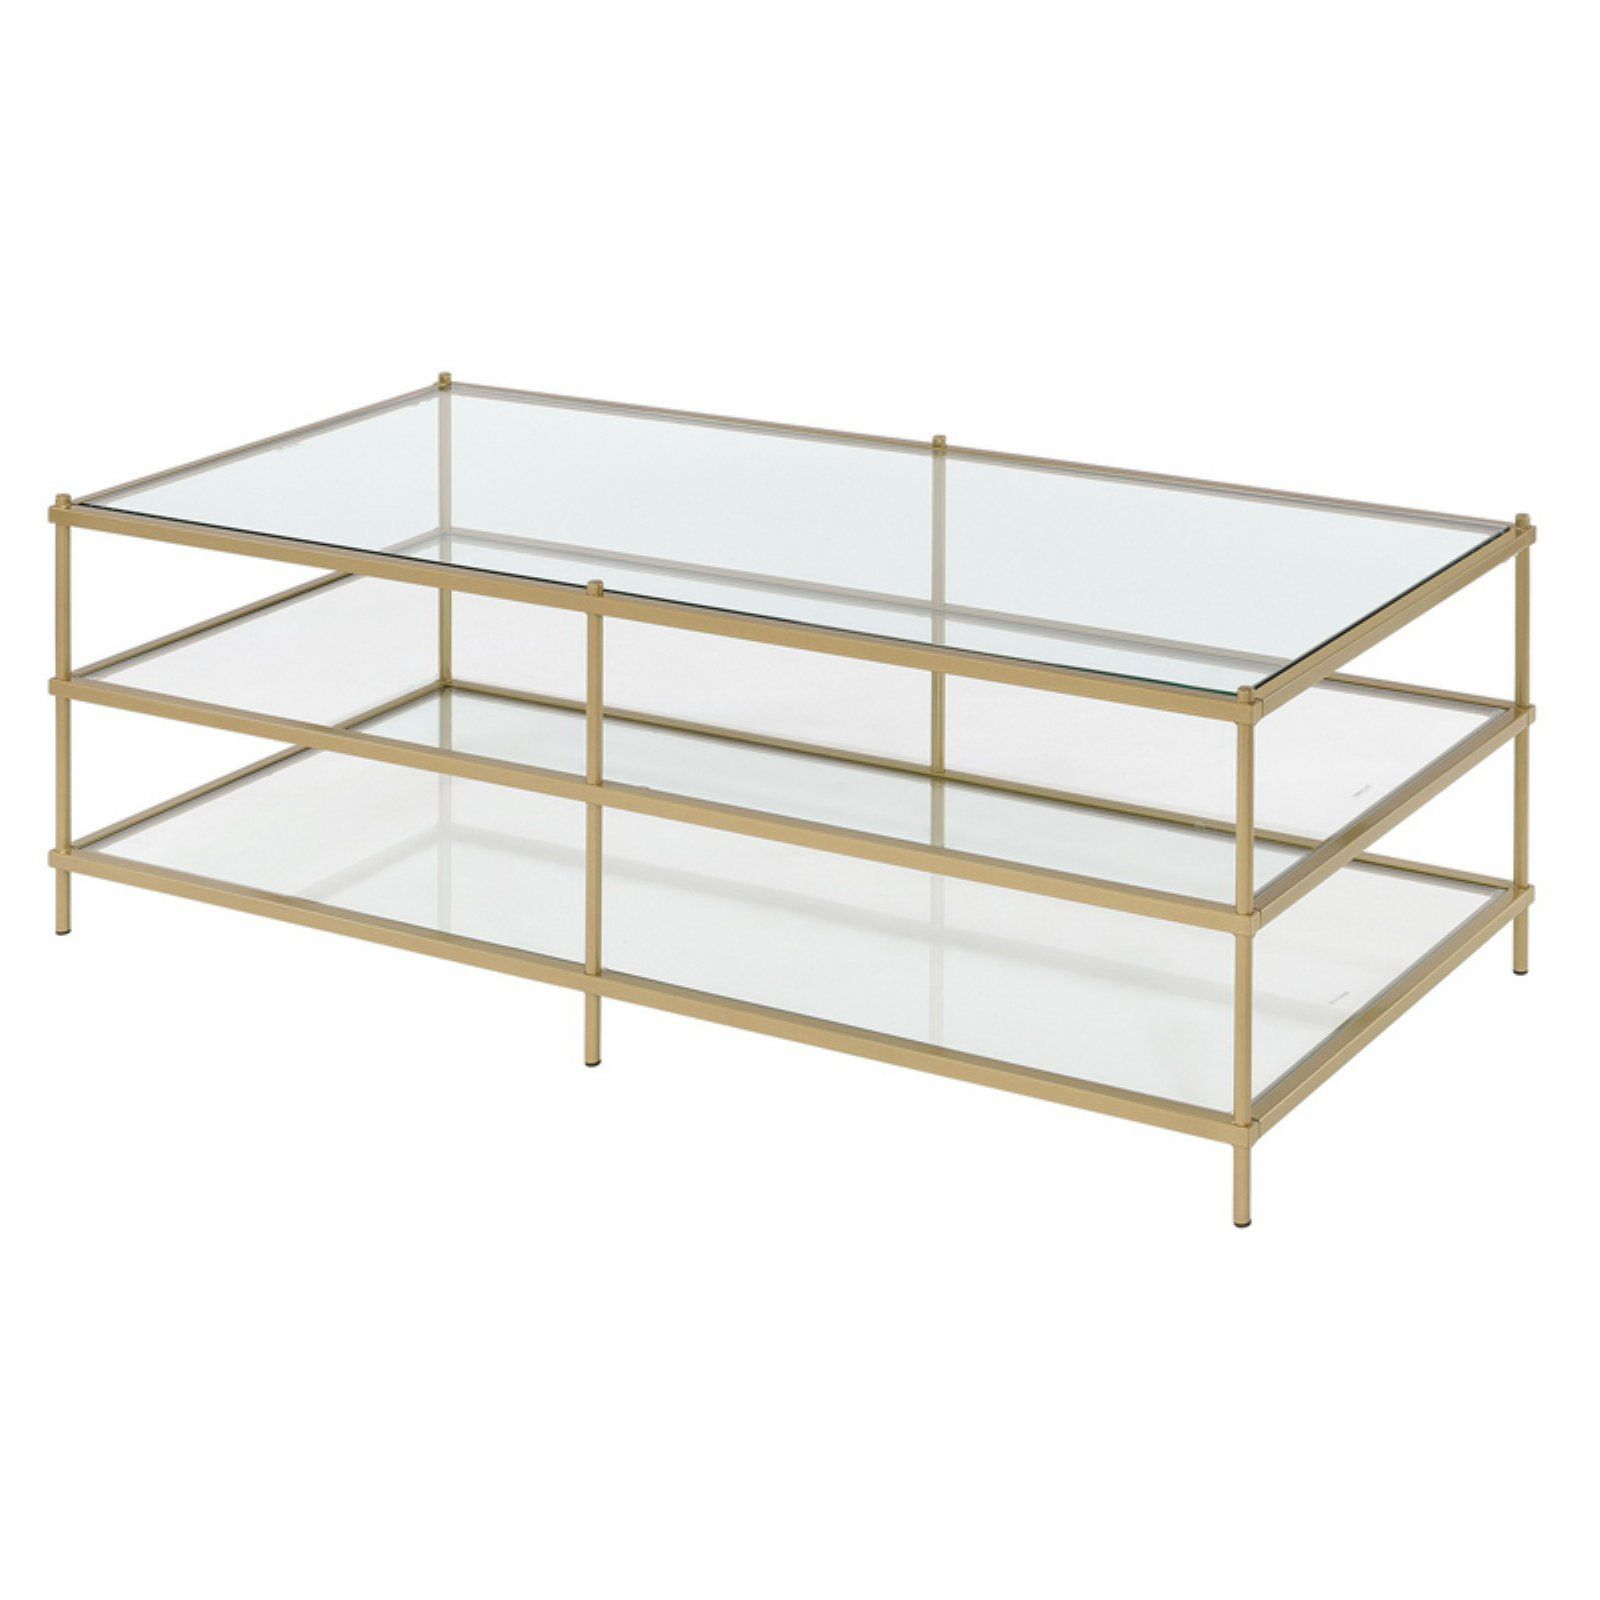 Fox Hill Trading Simplicity 3 Tier Coffee Table In 2020 3 Tier Coffee Table Glass Shelves Metal Accent Table